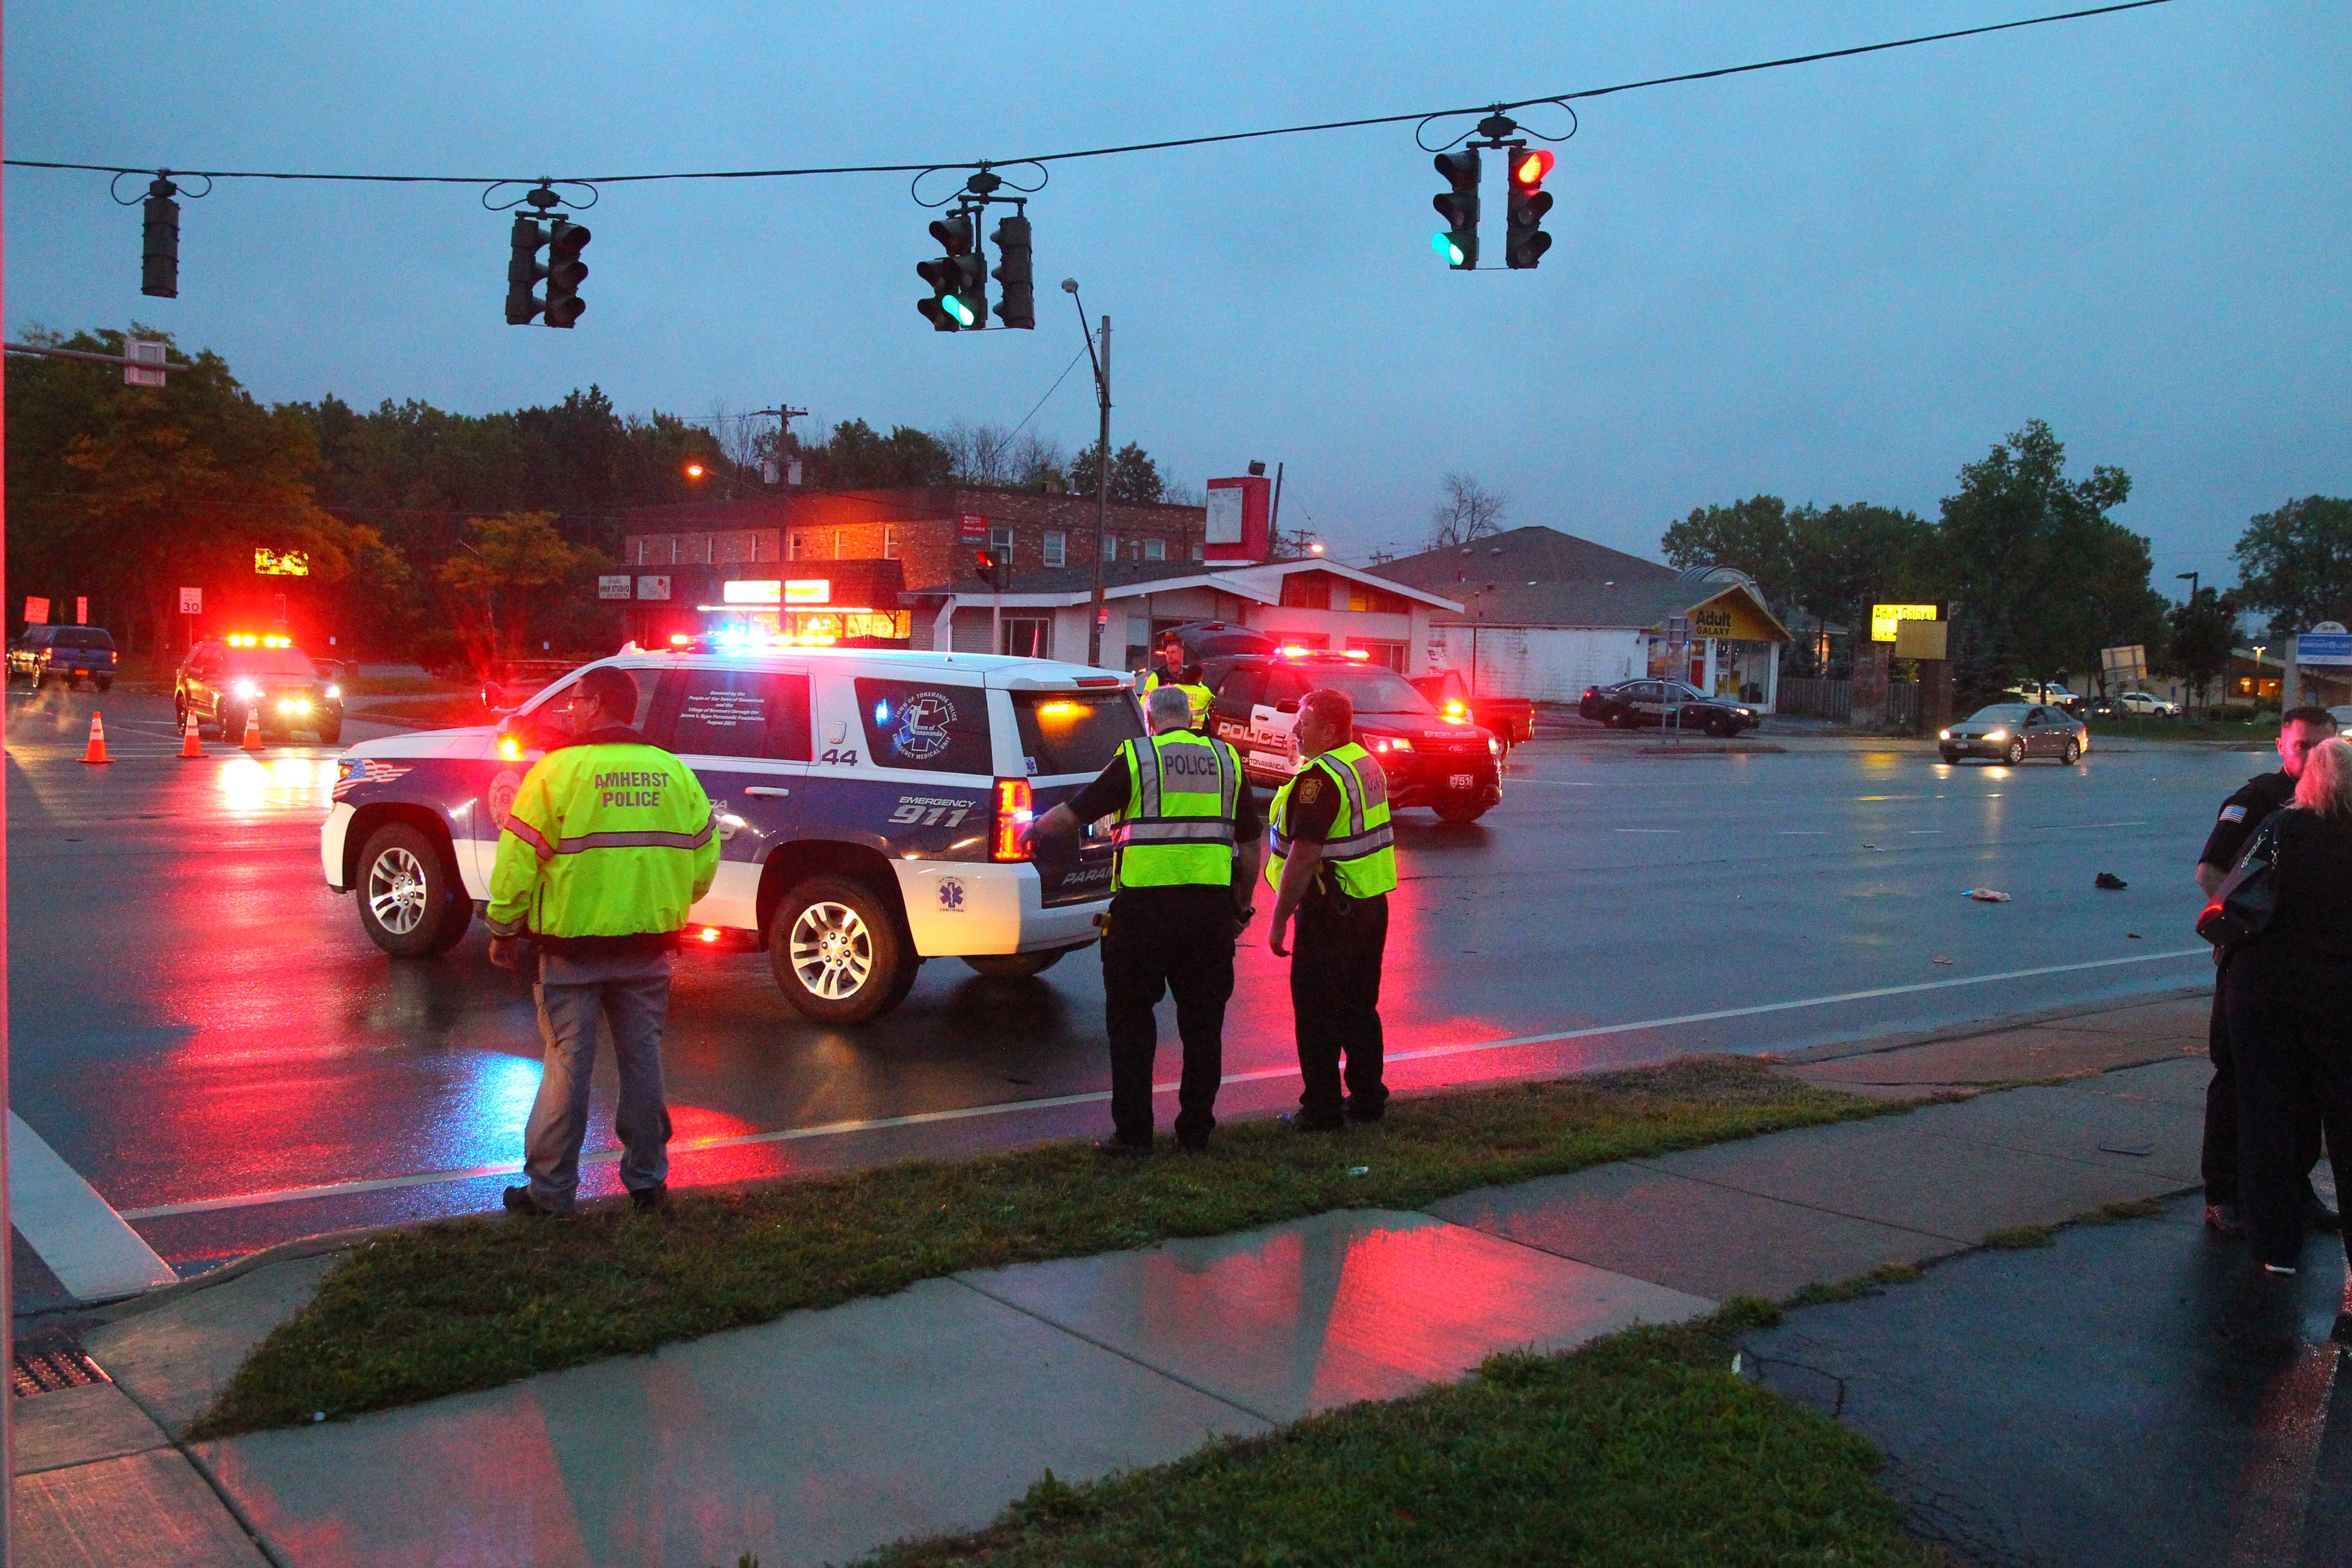 Tonawanda Police on the scene where a pedestrian was hit by a vehicle at the intersection of Niagara Falls Boulevard and  Willow Ridge in the Town of Tonawanda, N.Y. on Thursday Sept. 29, 2016.   (John Hickey/Buffalo News)